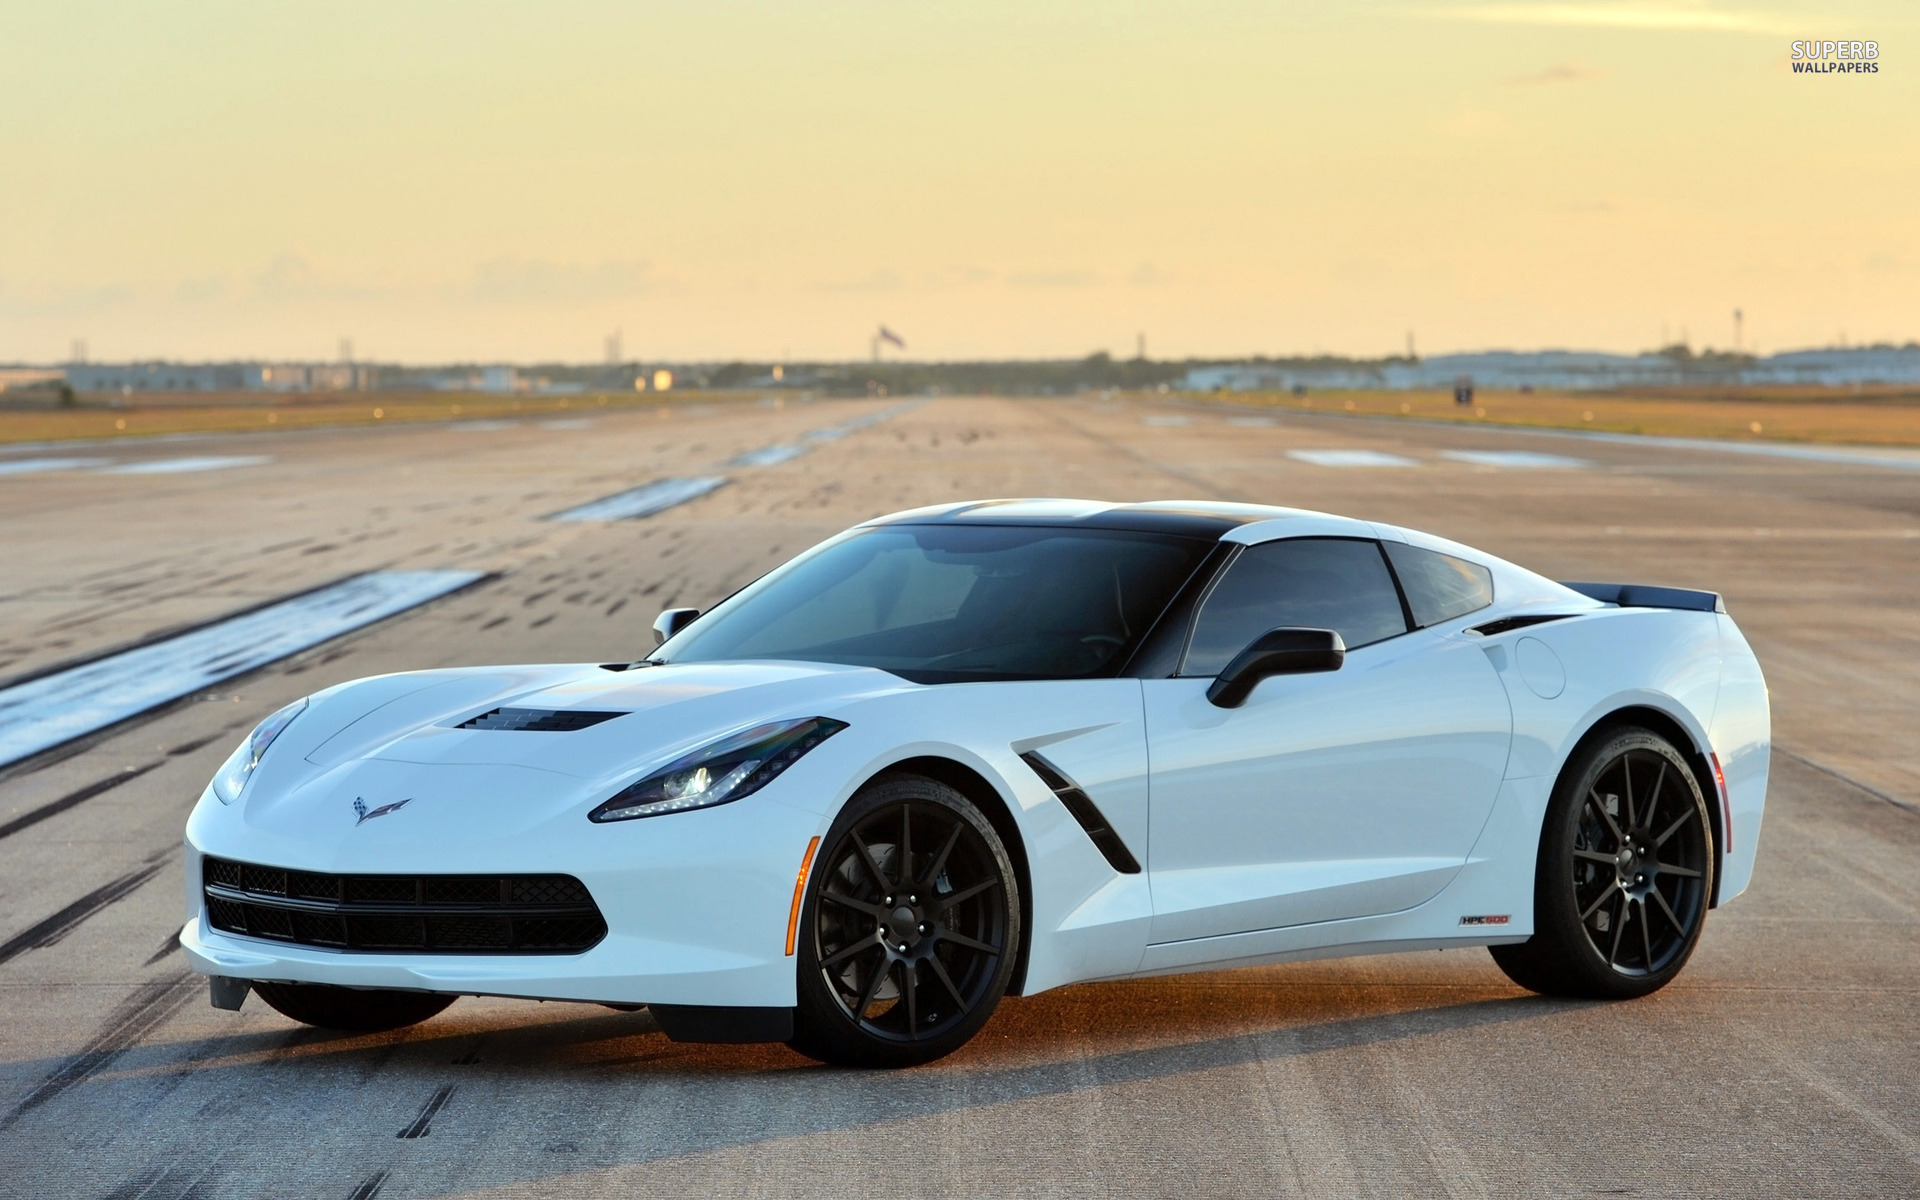 Chevrolet Corvette Stingray #2